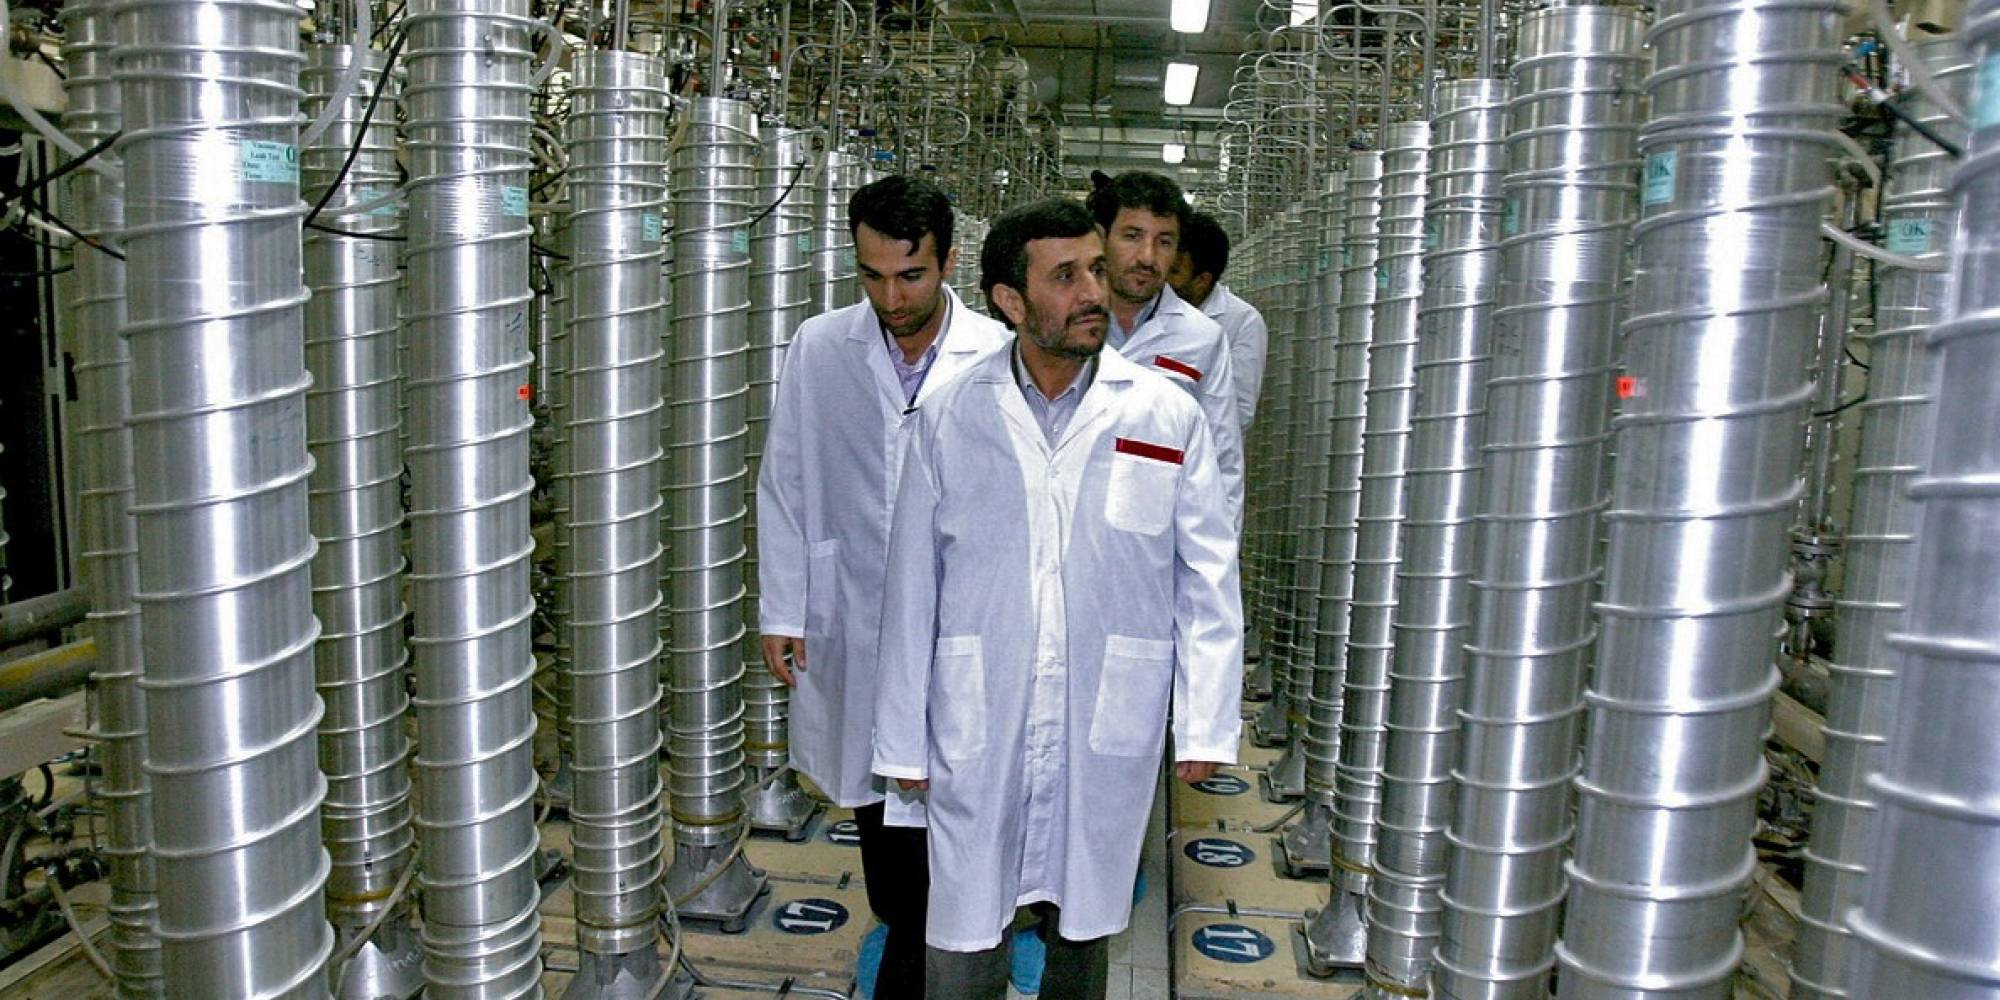 people walk through field of nuclear centrifuges